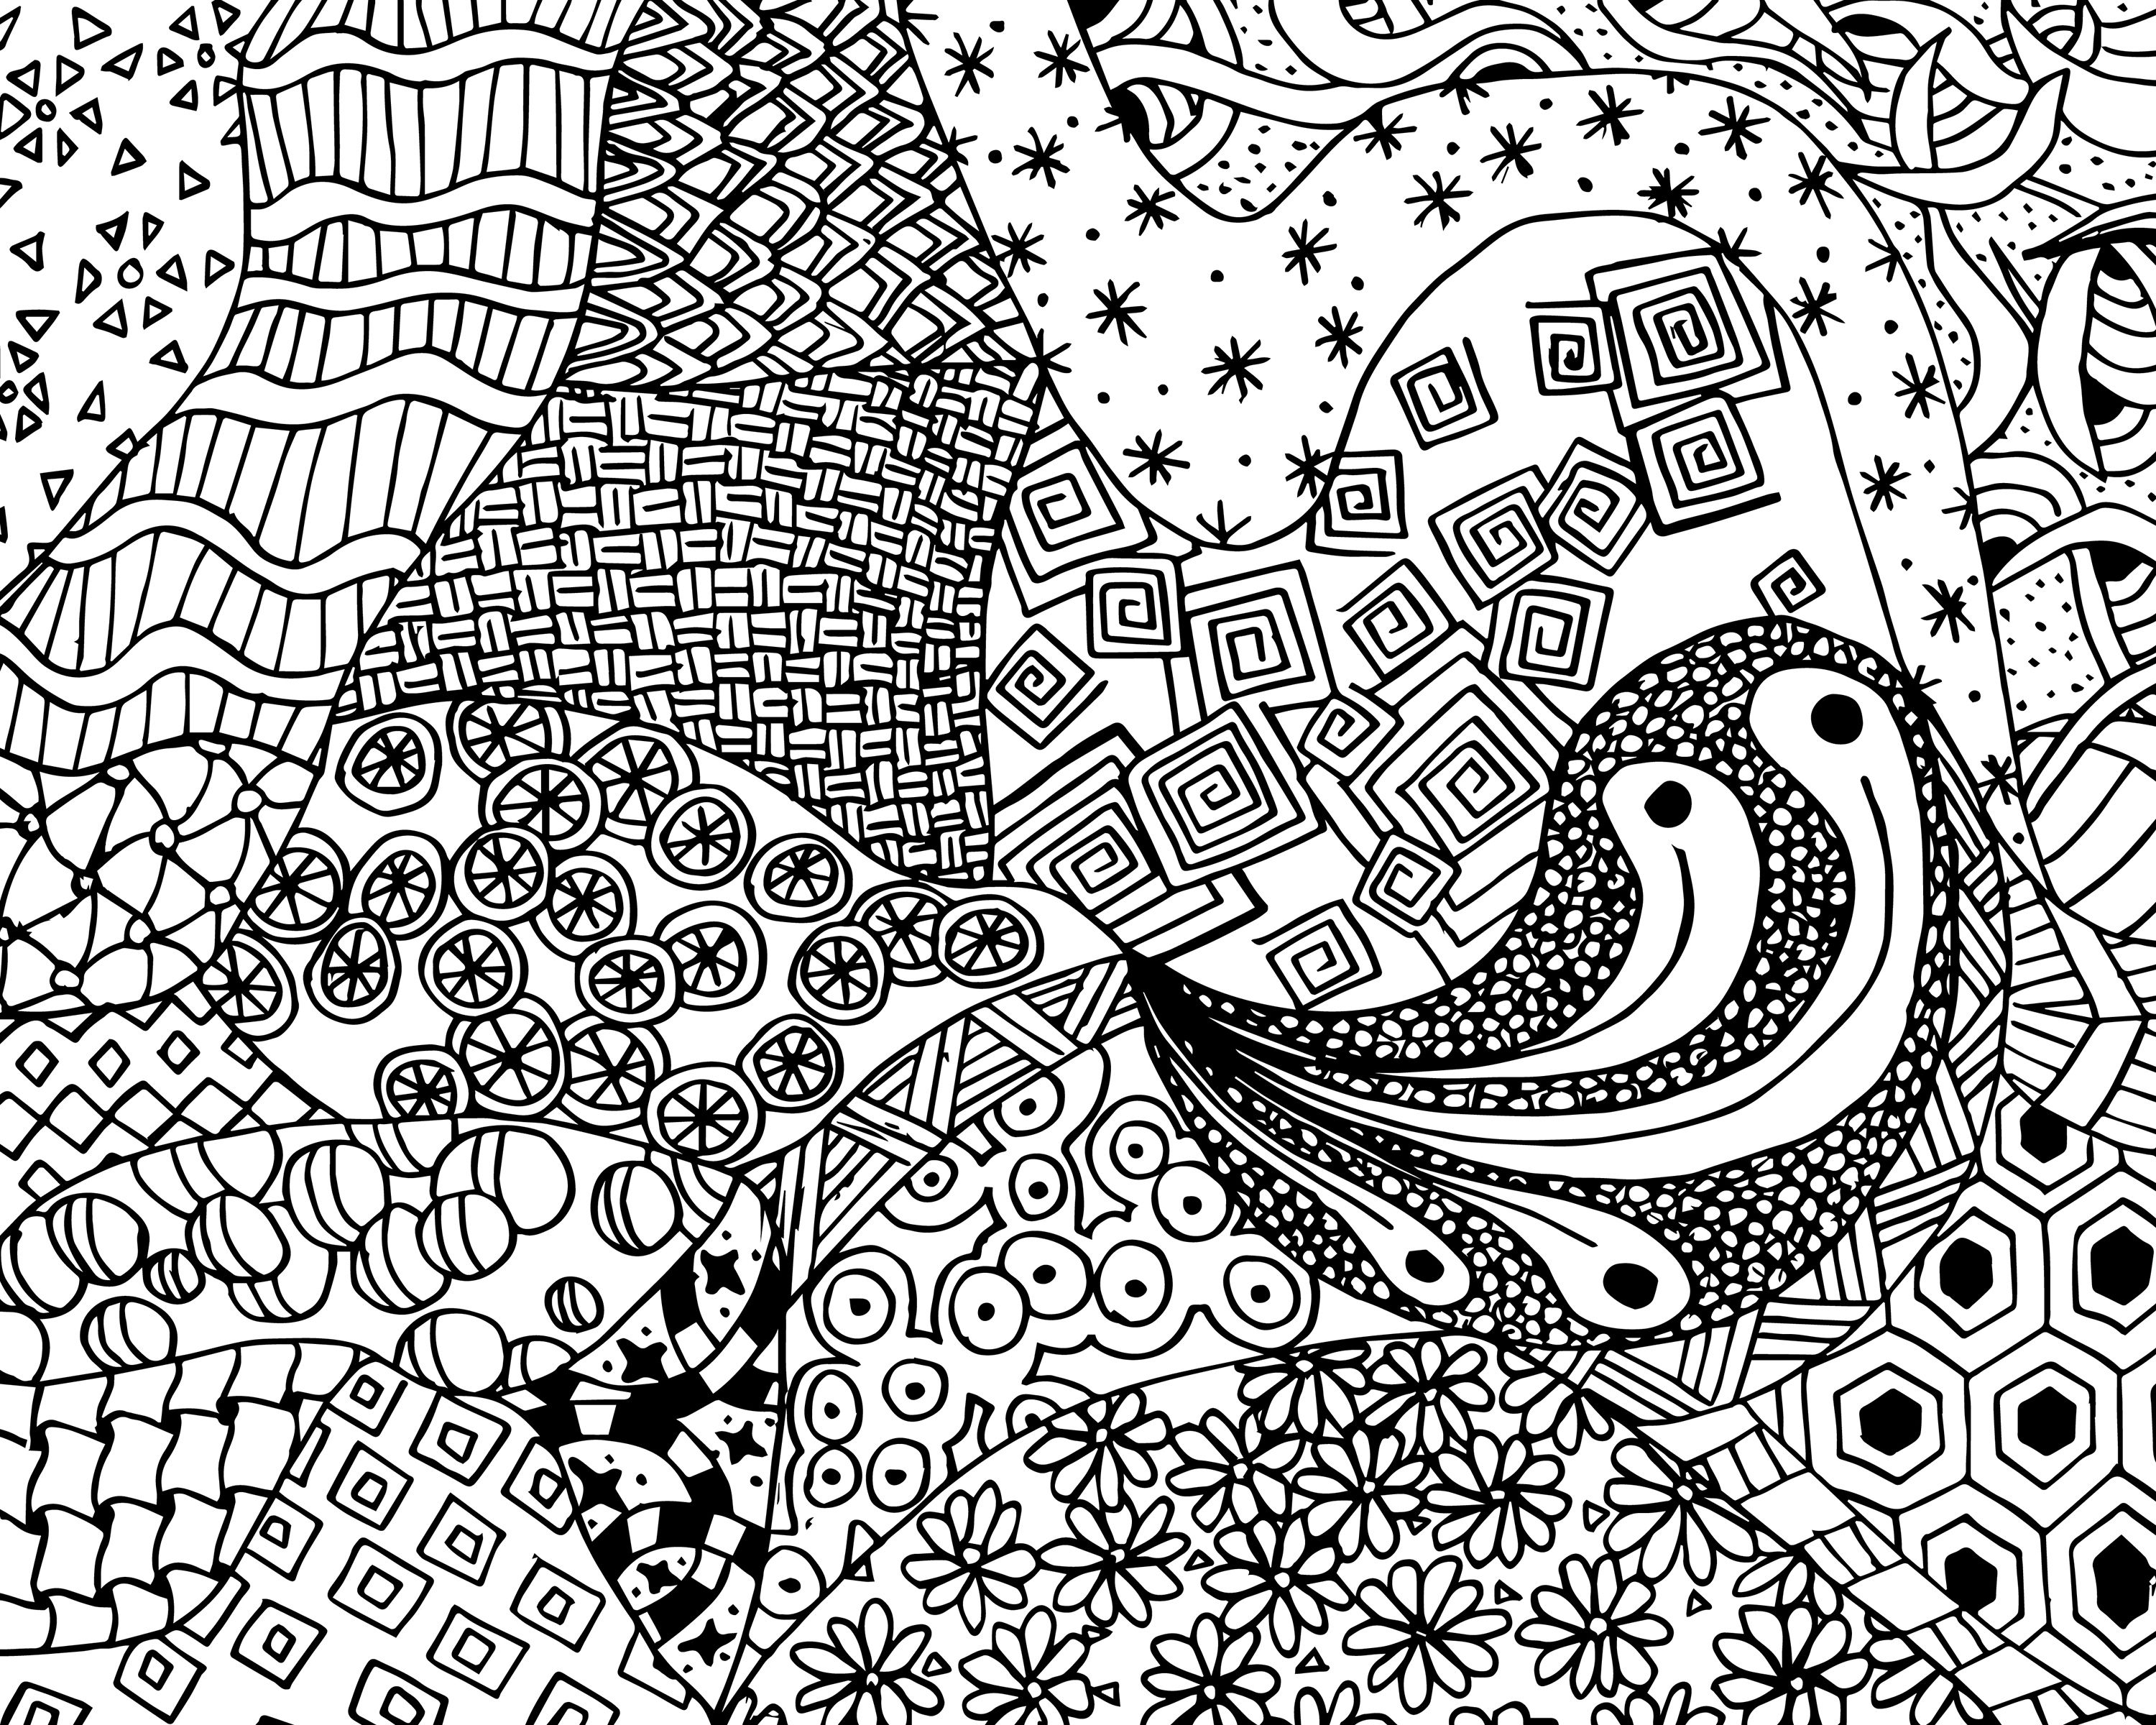 Free Zen Doodle Design Adult Coloring Page Printable With Zendoodle - Free Printable Zen Coloring Pages